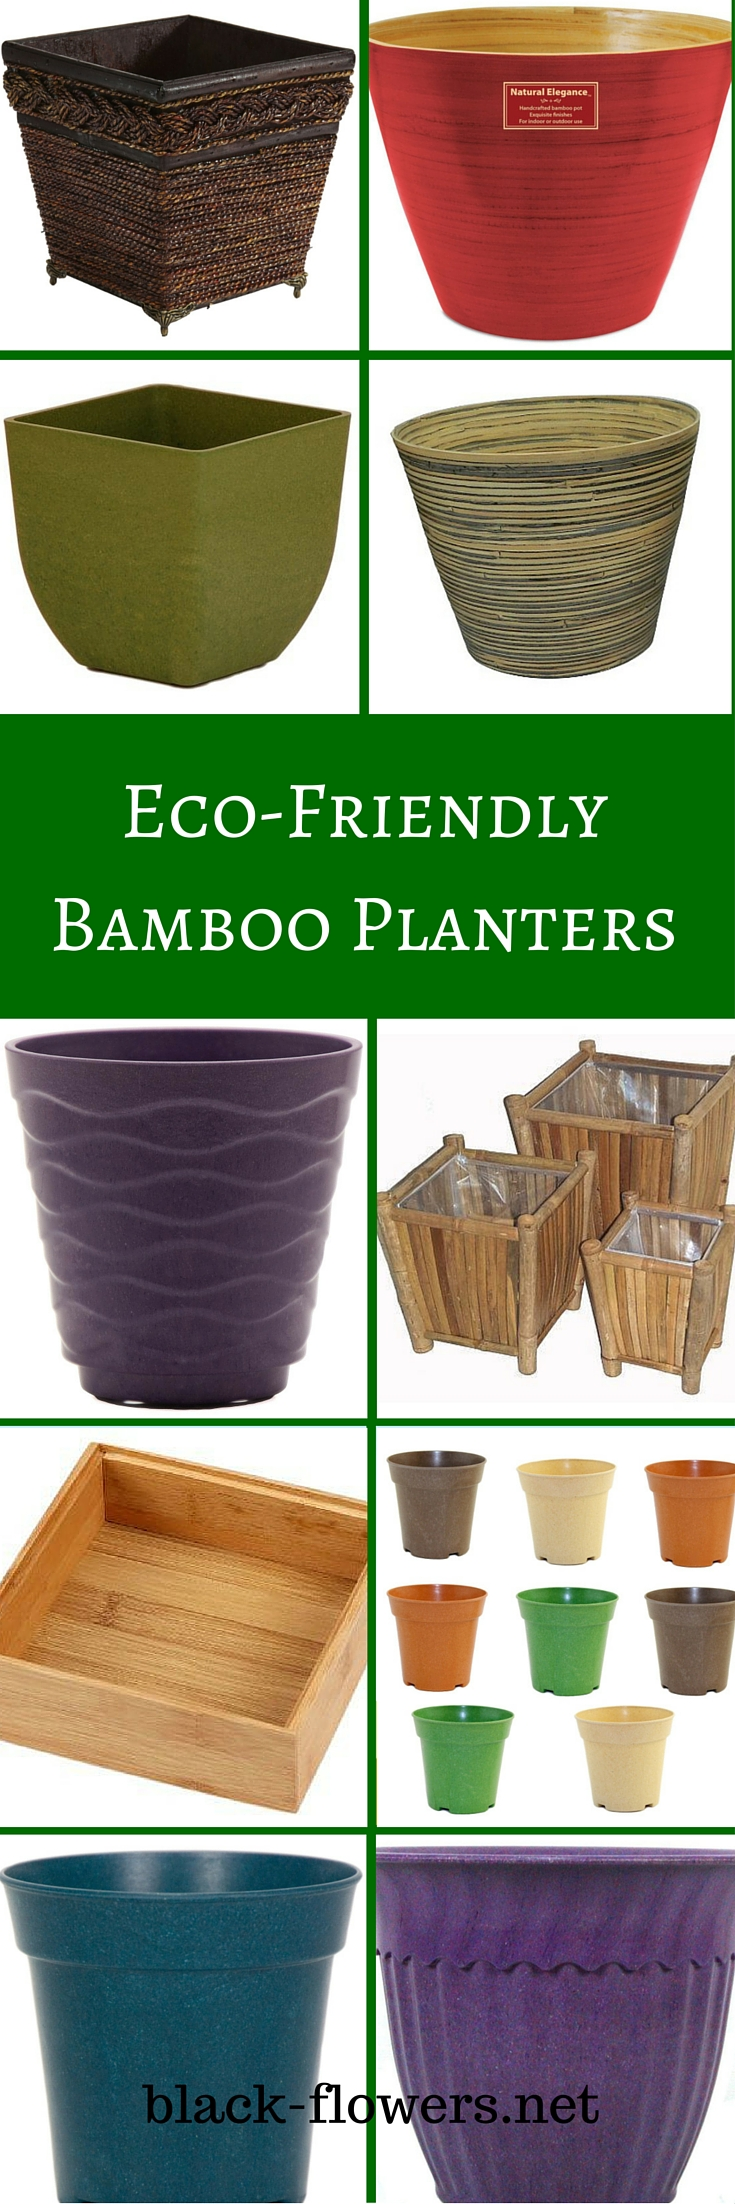 Eco-Friendly Bamboo Planters